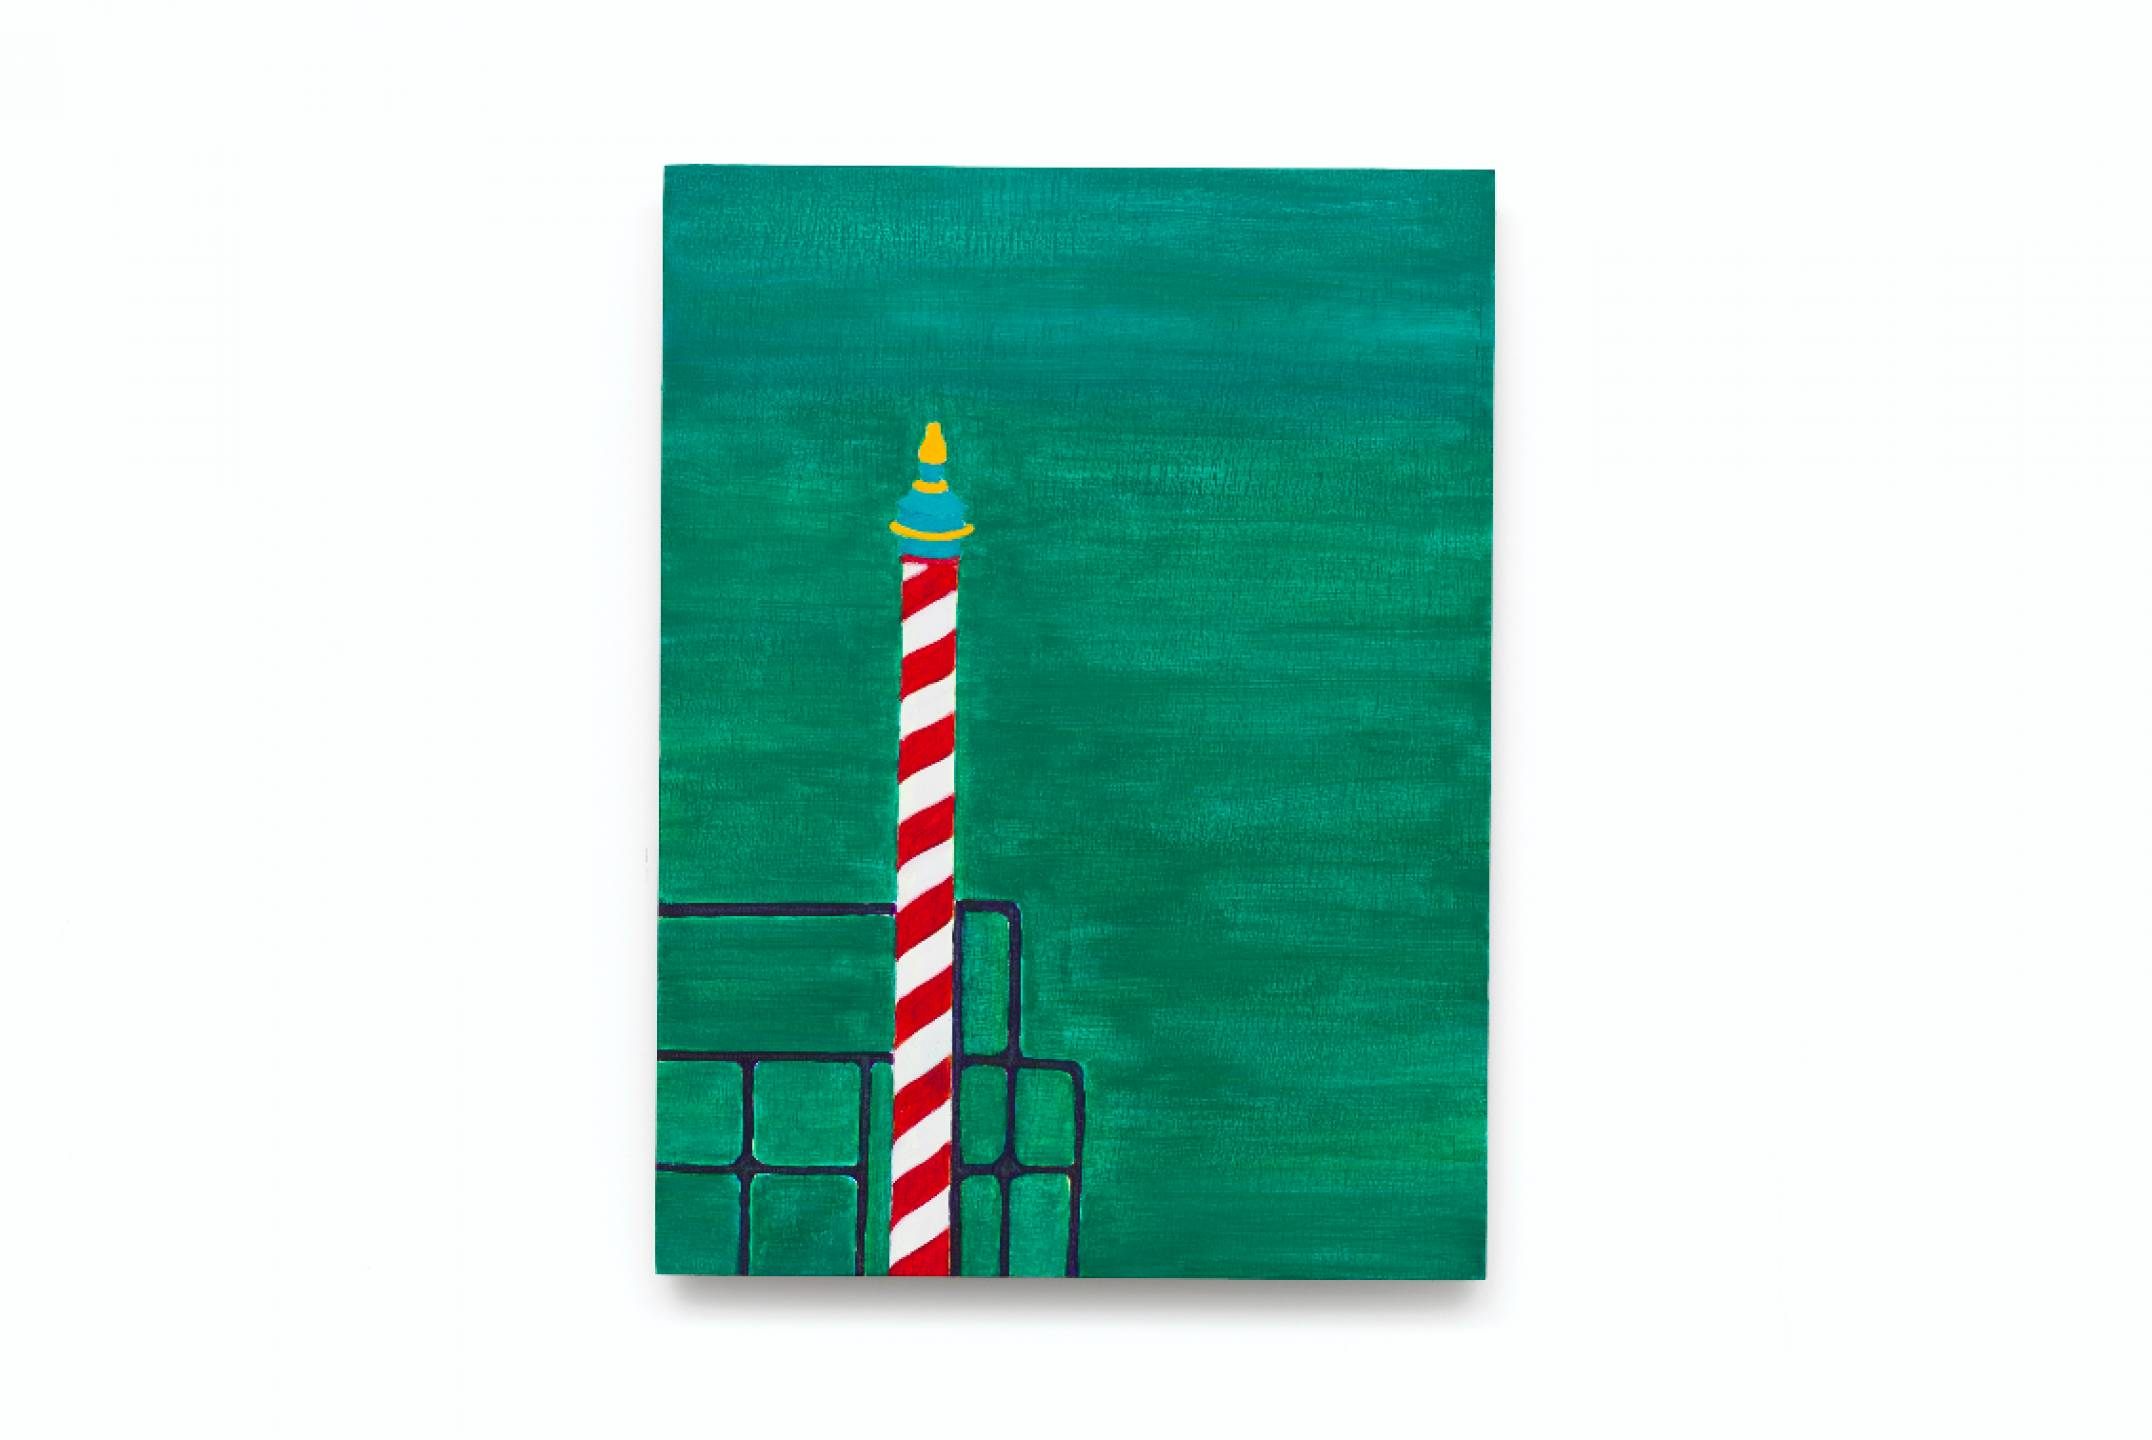 Patricia Leite, <em>untitled, from Veneza series</em>, 2015, oil on wood, 40 × 30 cm - Mendes Wood DM